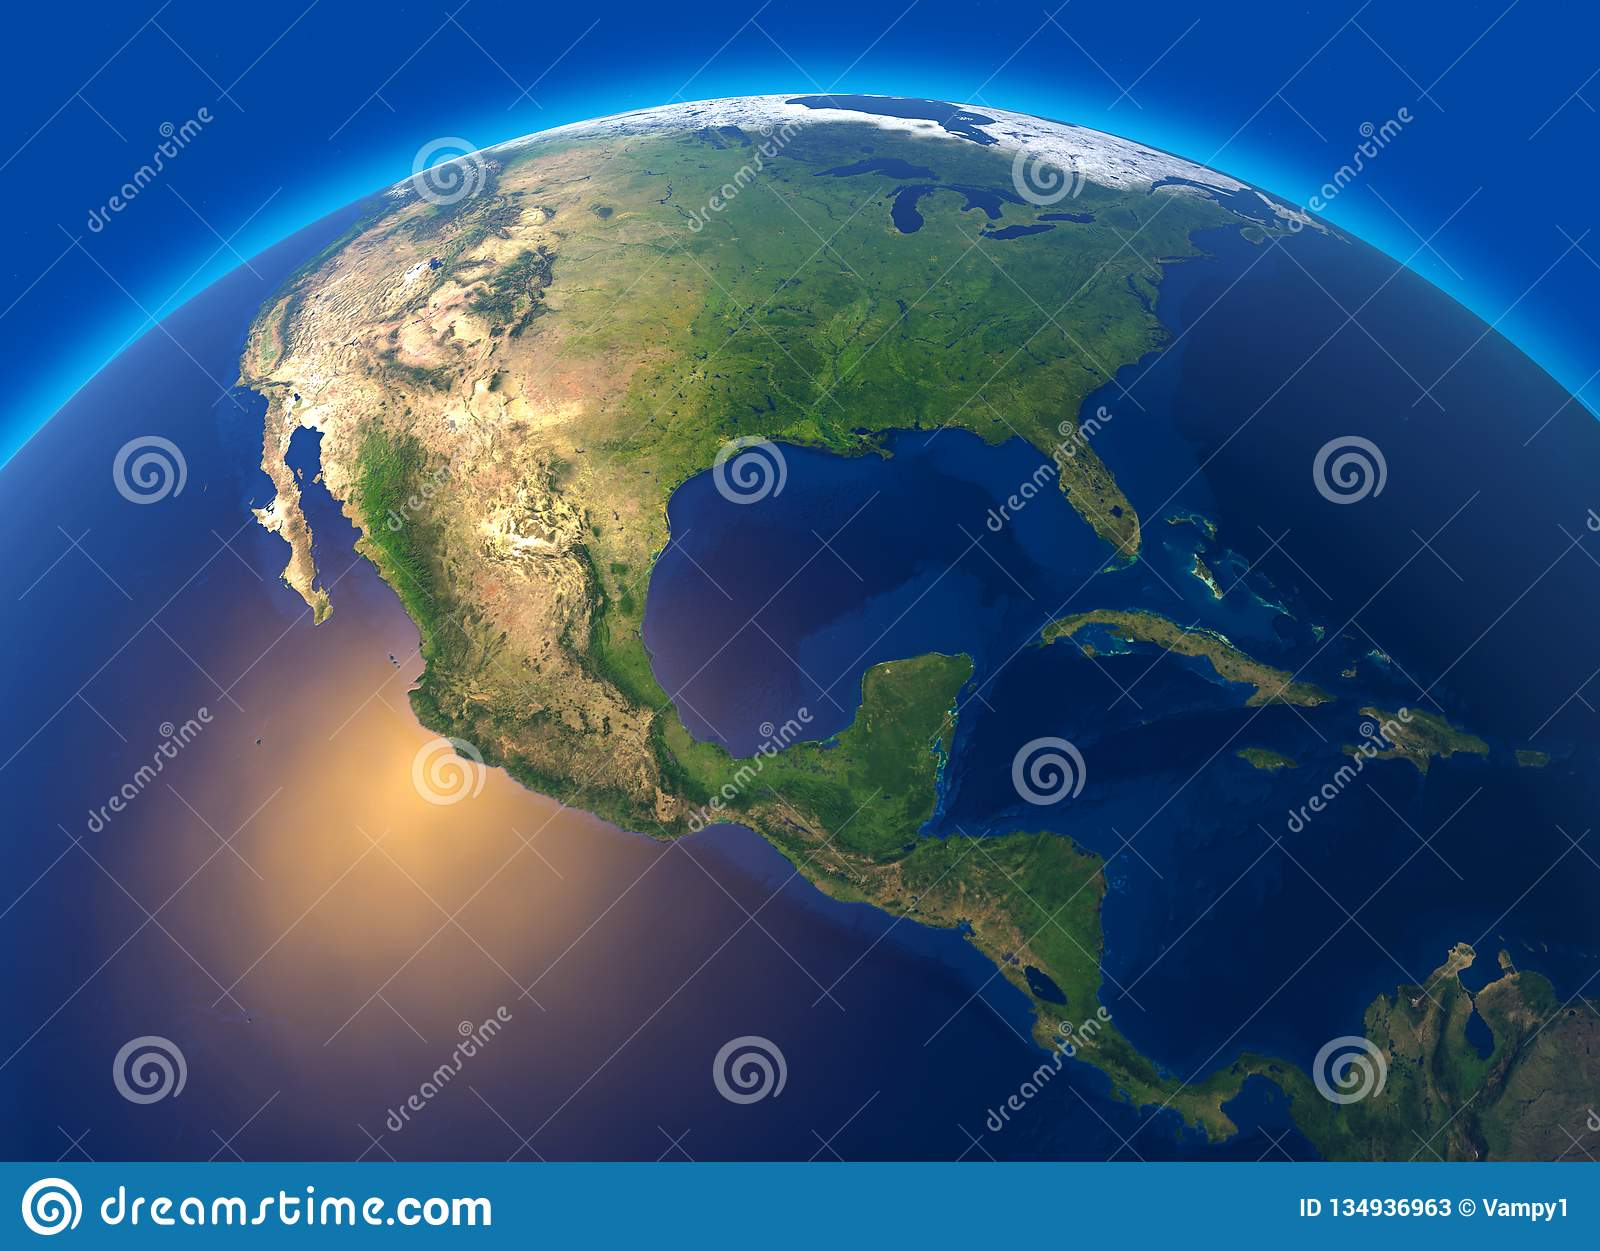 Physical Map Of The World, Satellite View Of Central America ...